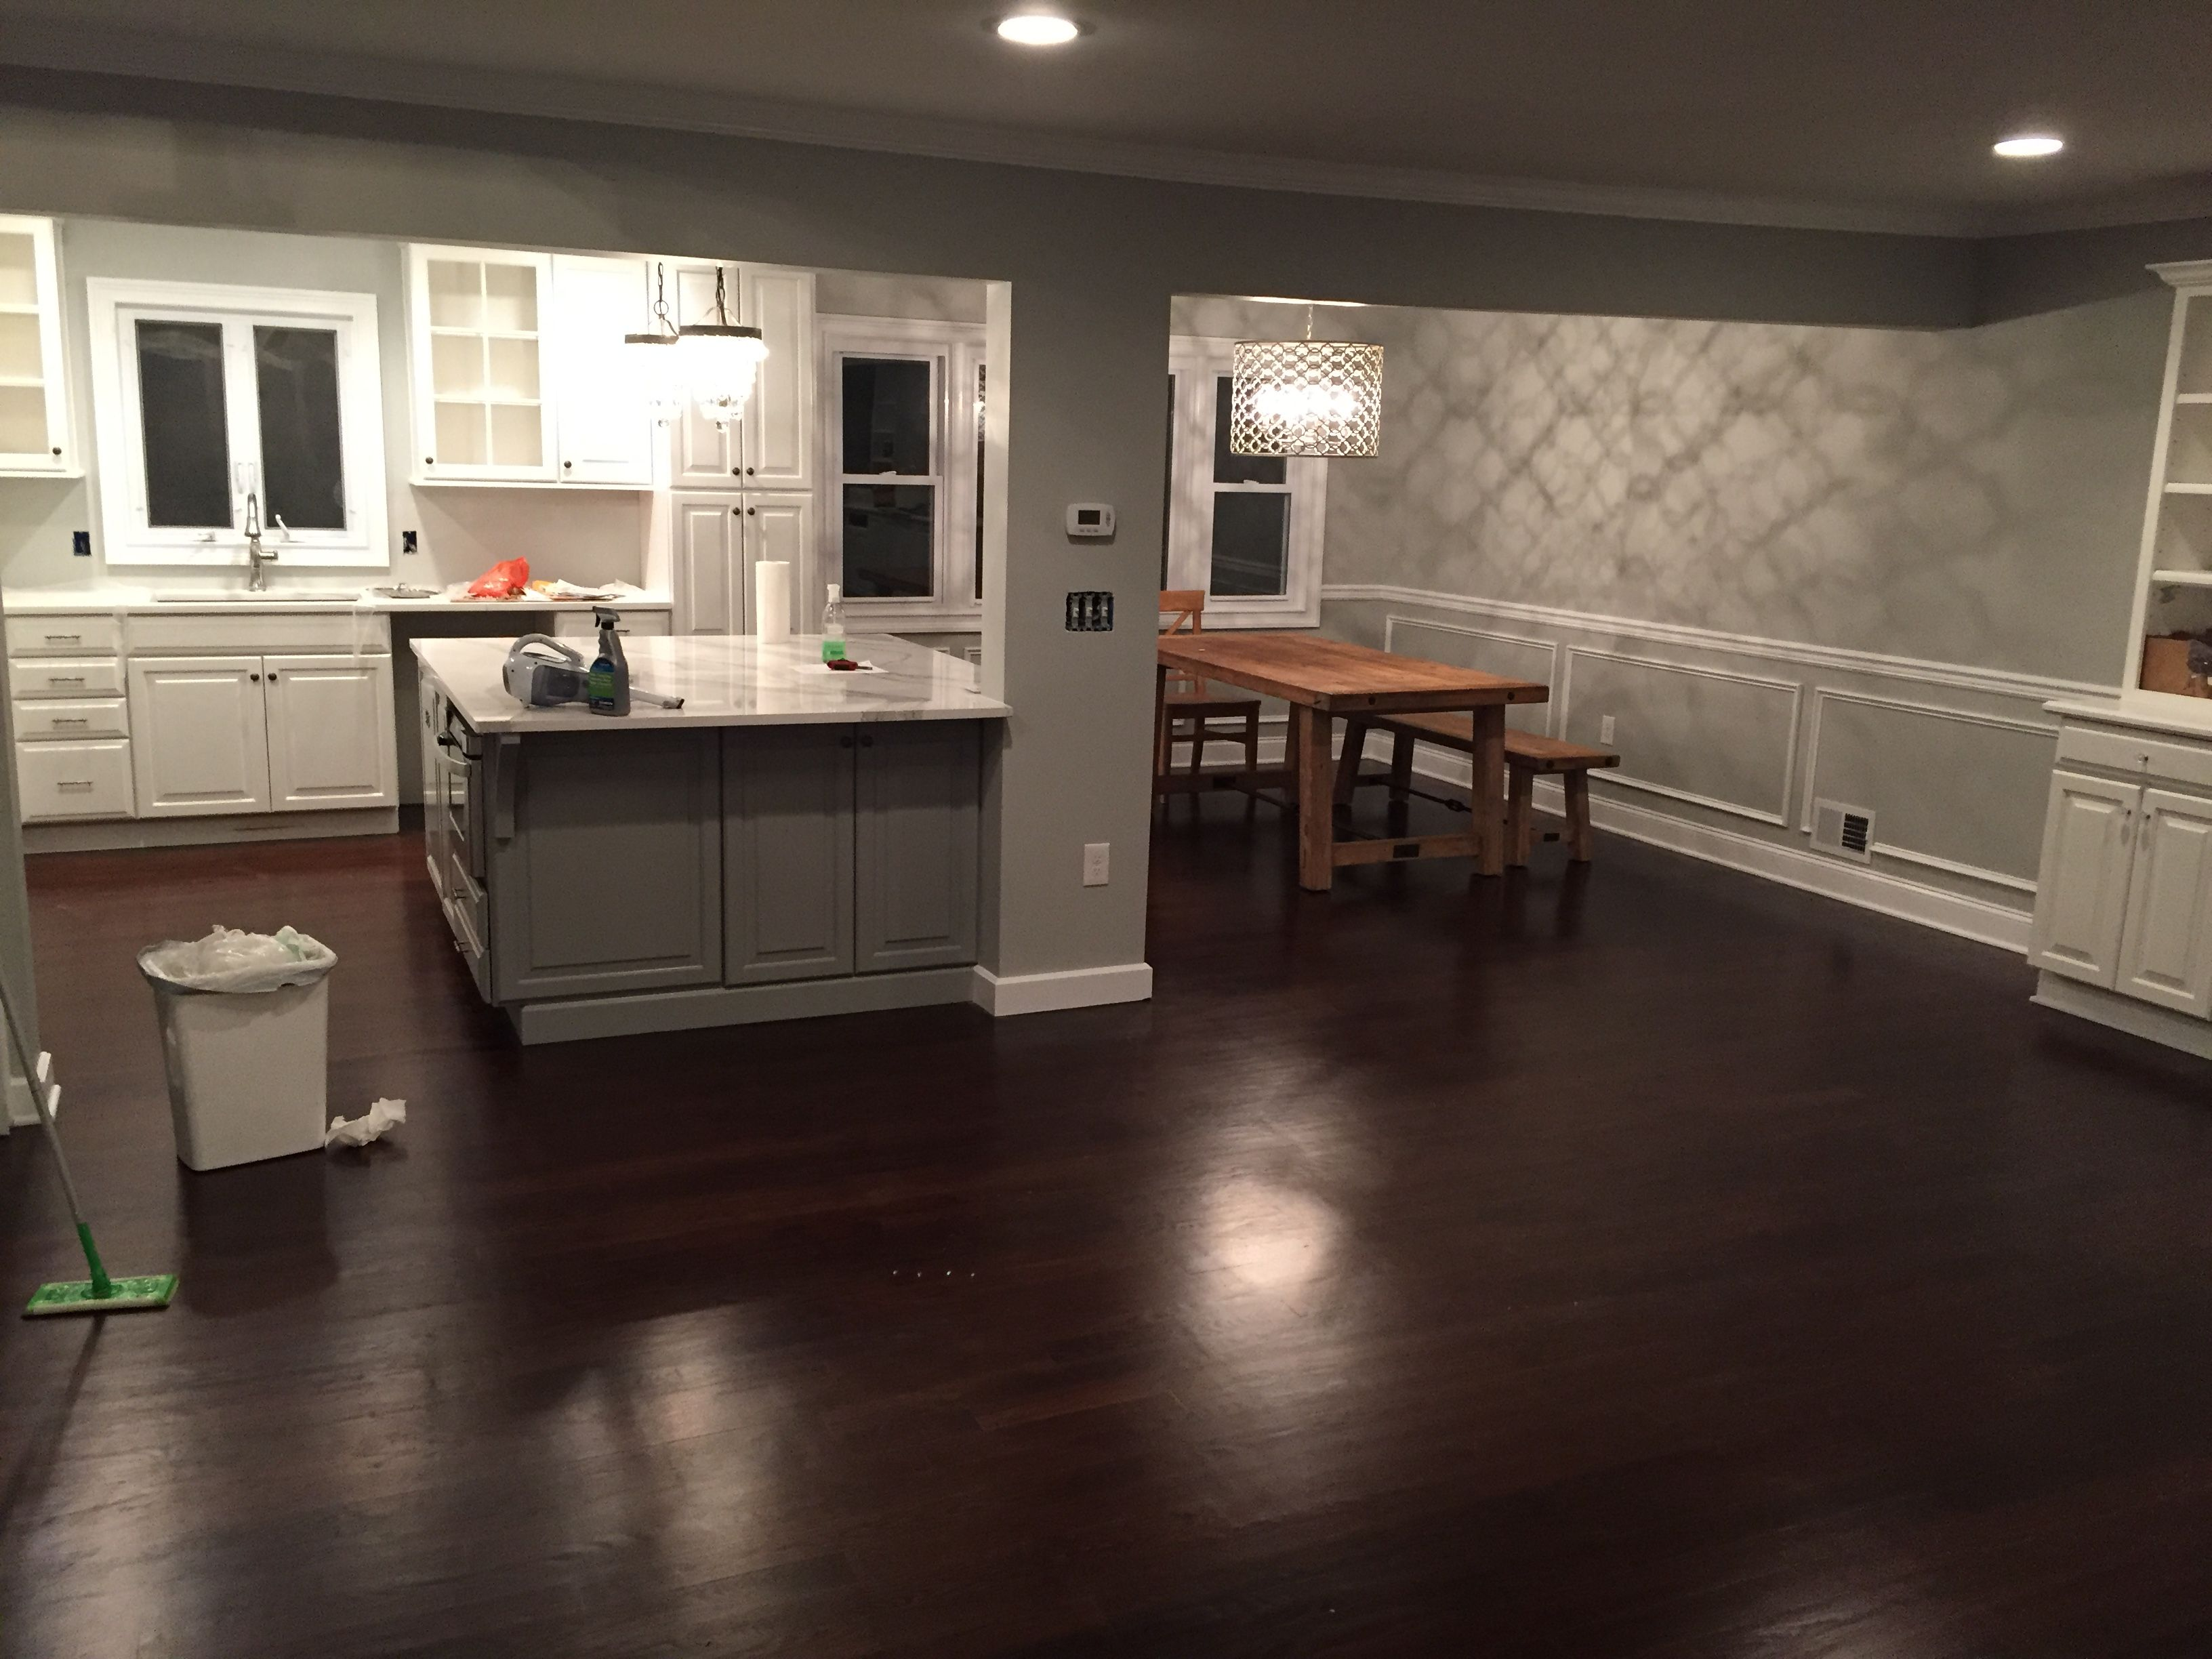 Split level kitchen renovation big island for the home